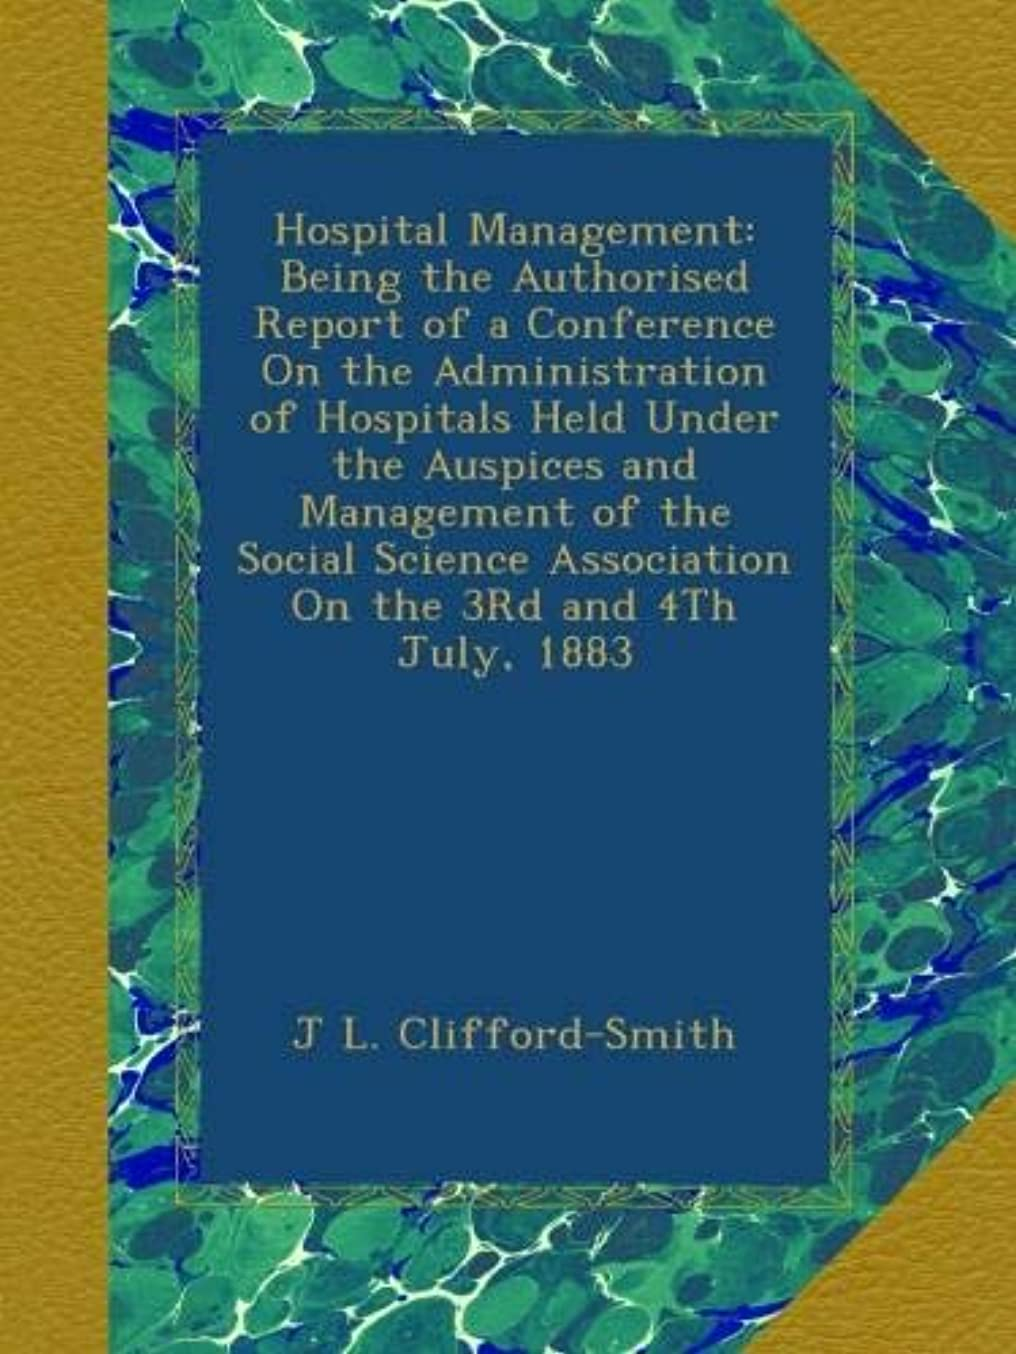 普及支配的王位Hospital Management: Being the Authorised Report of a Conference On the Administration of Hospitals Held Under the Auspices and Management of the Social Science Association On the 3Rd and 4Th July, 1883